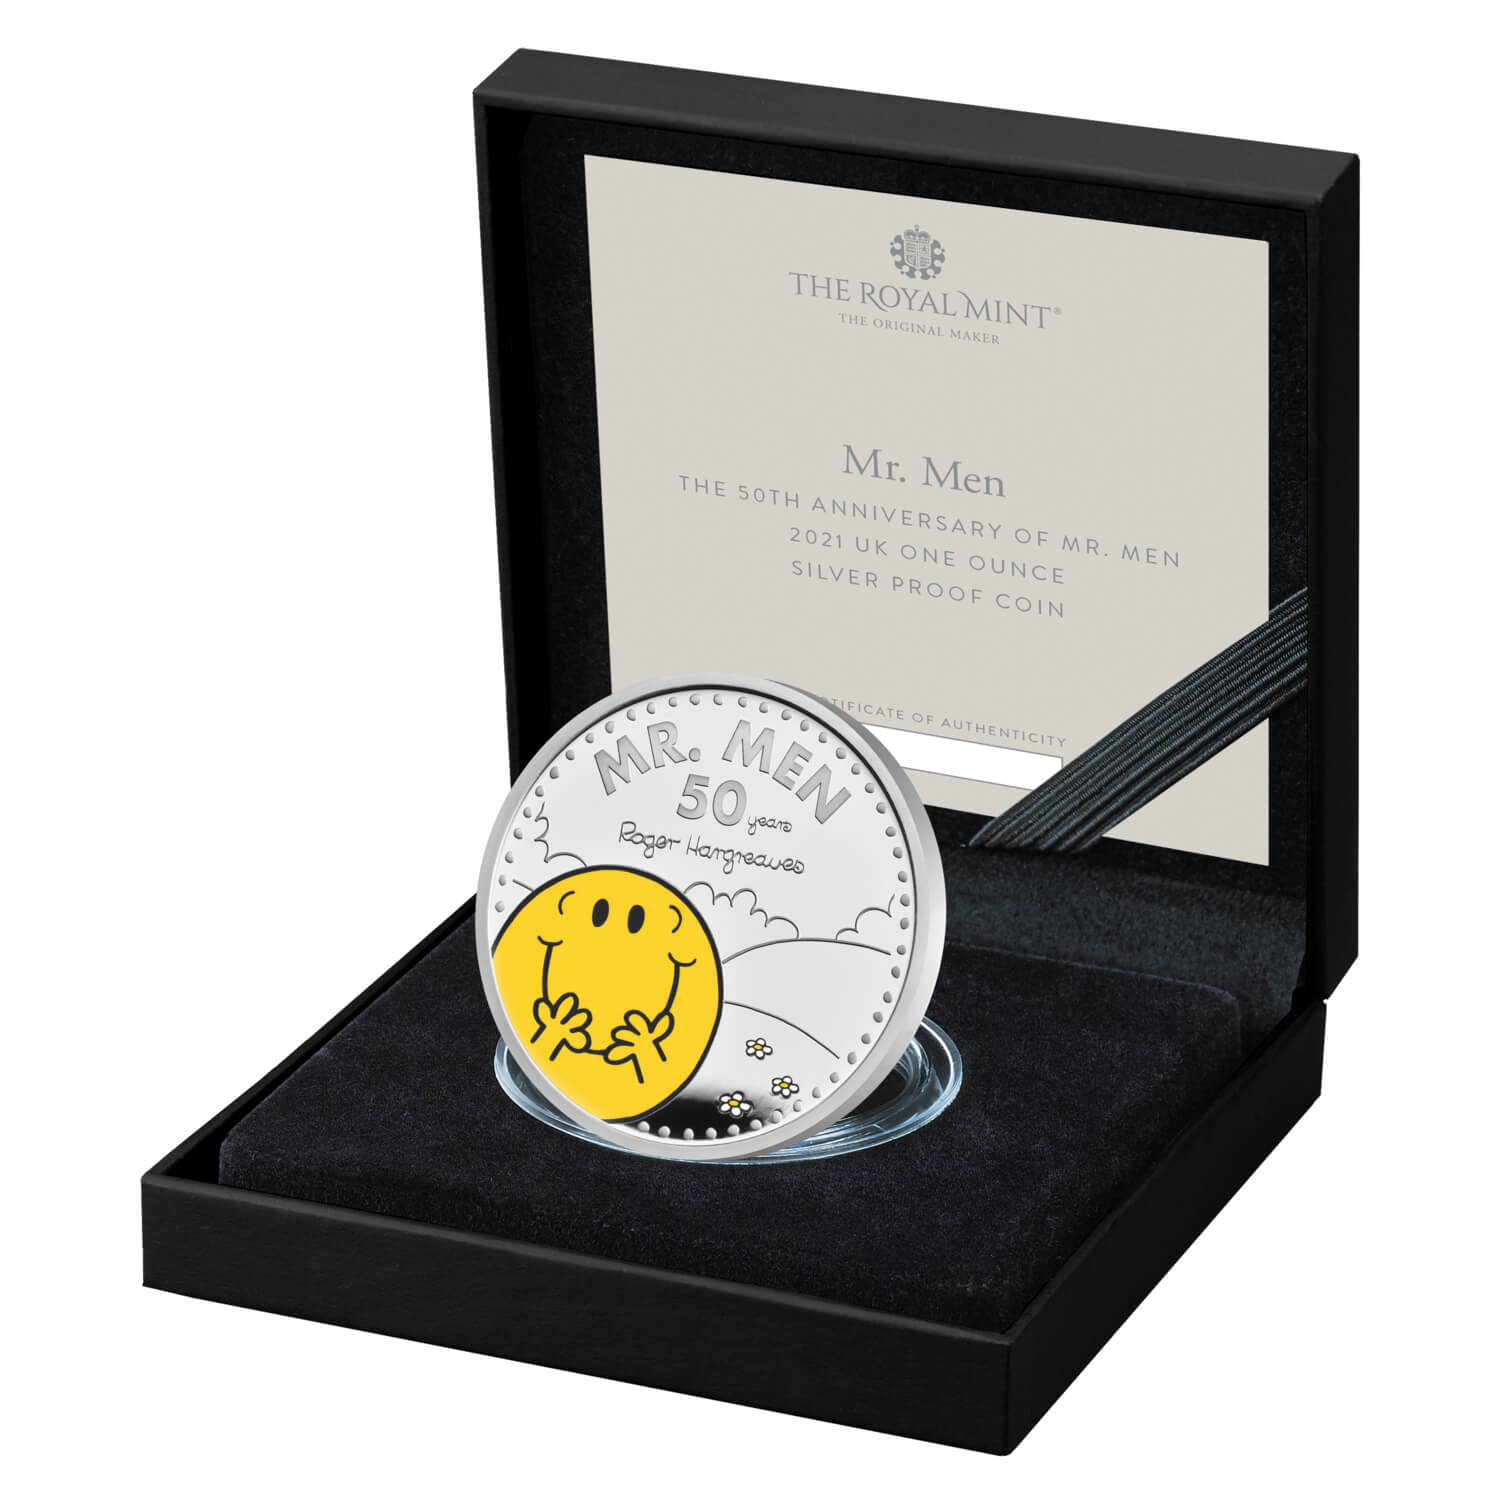 MR MEN One Ounce Silver Proof Coin